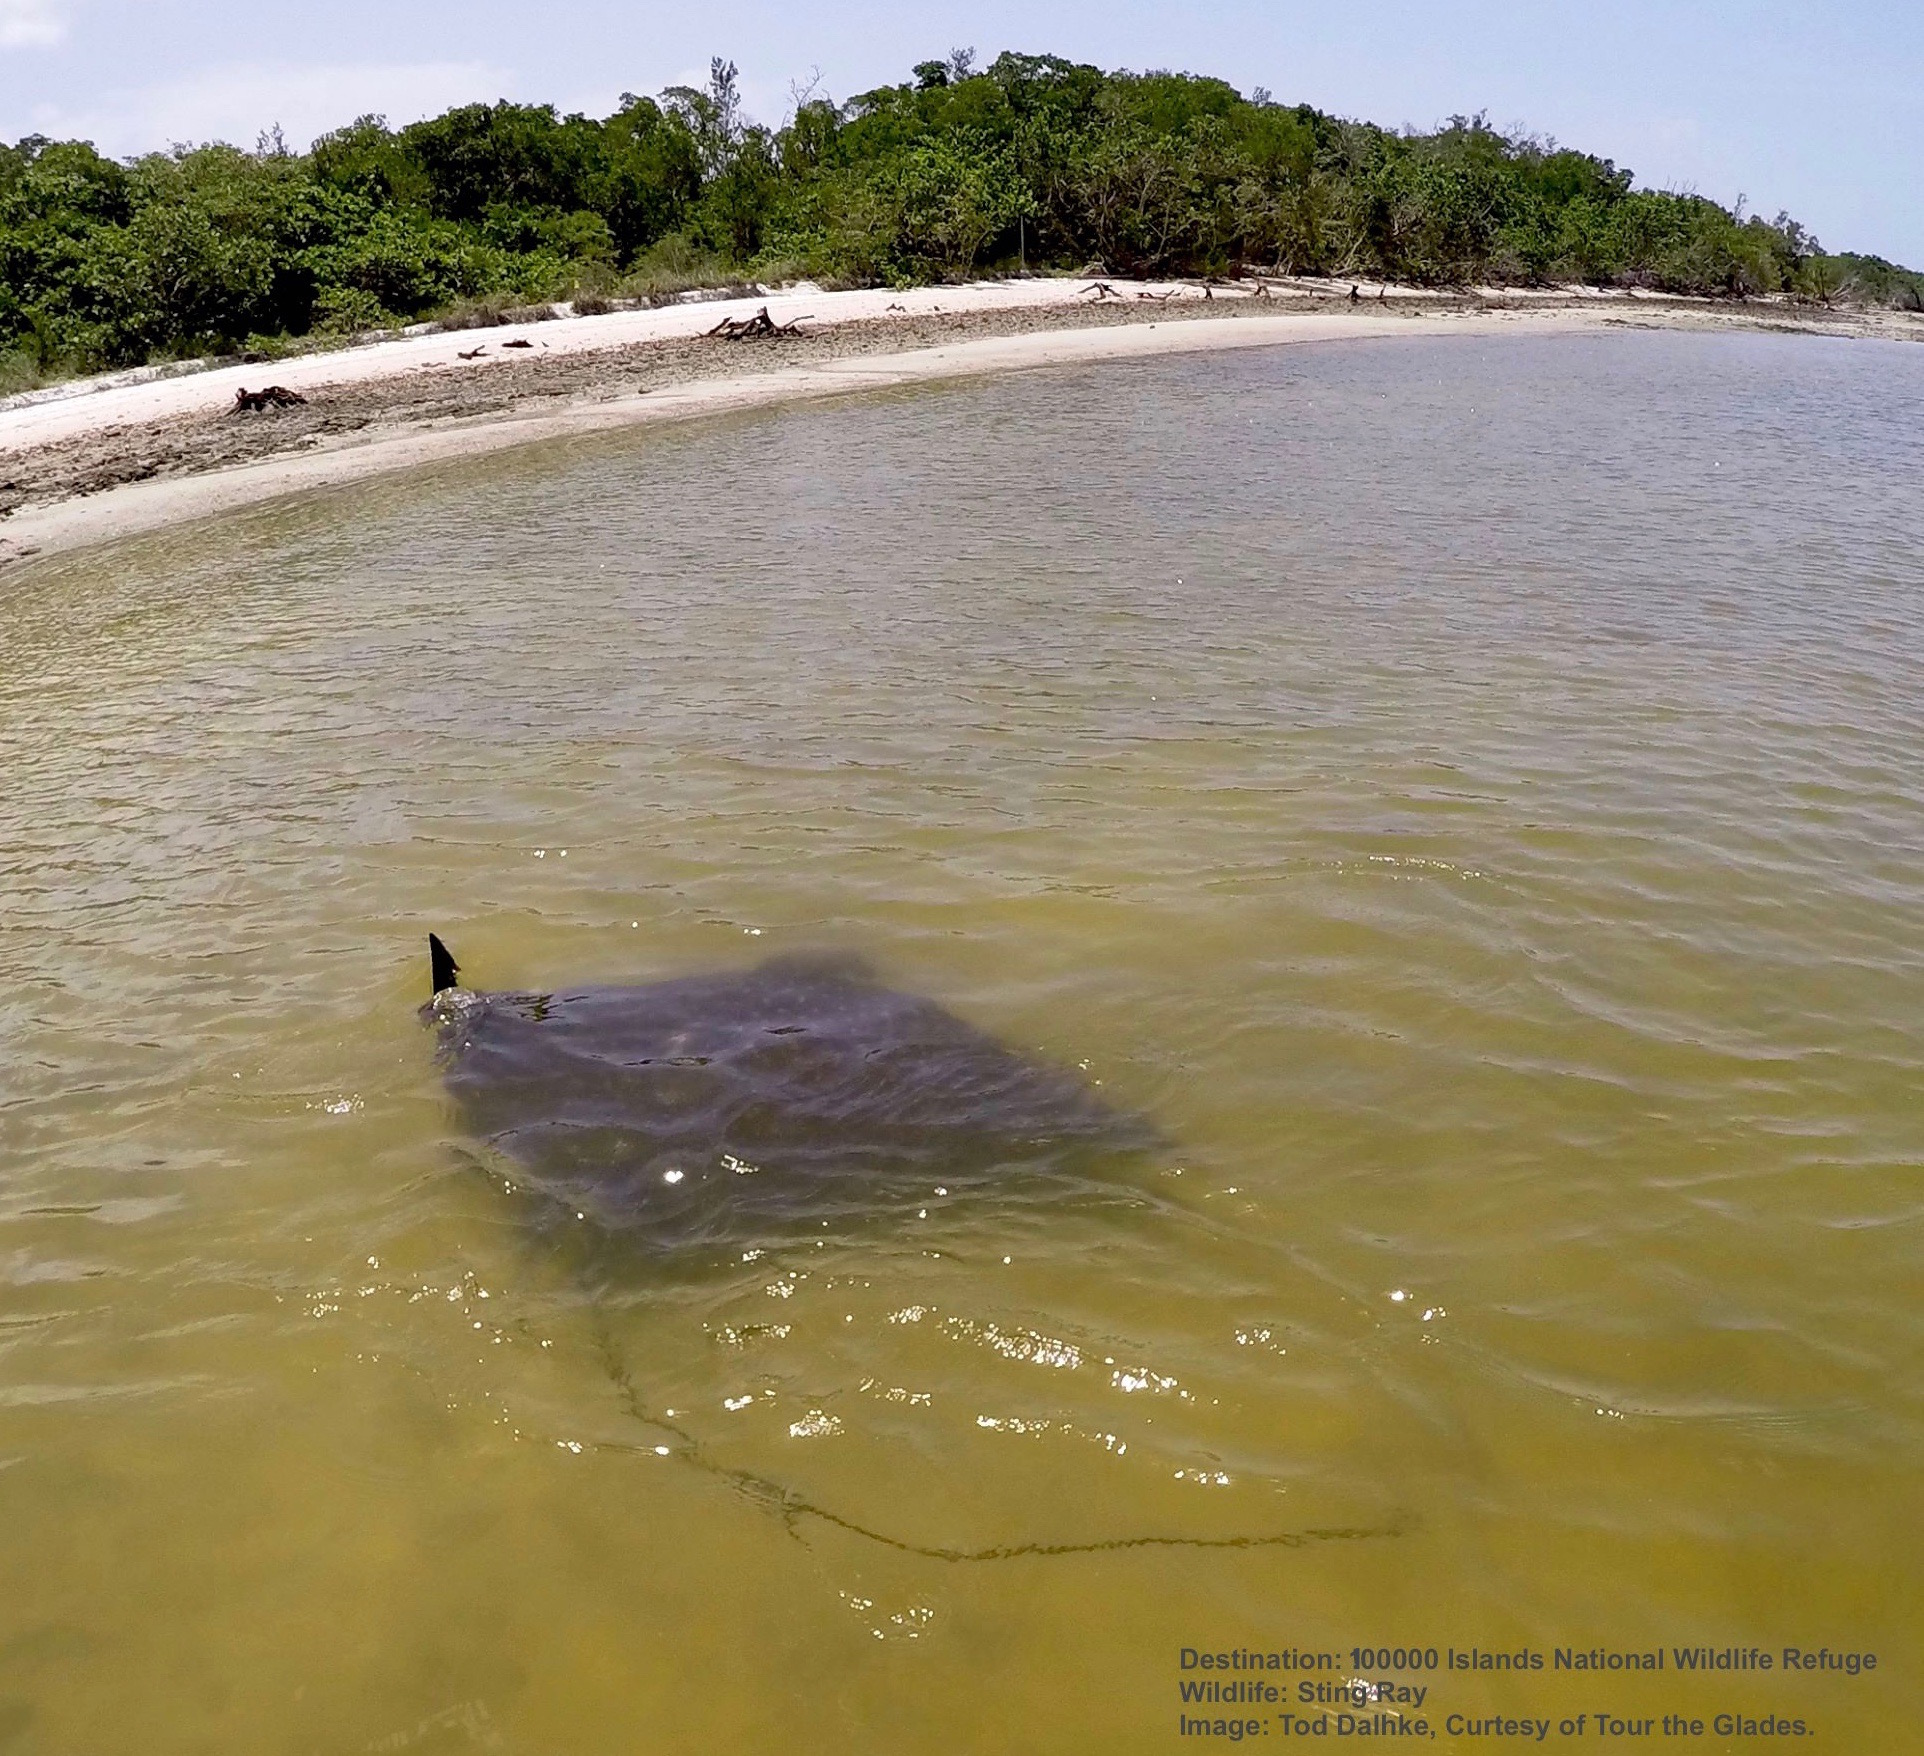 LOOK FOR DOLPHINS, BULL SHARKS, HORSESHOE CRABS, SEA TURTLES & RAYS AROUND 10,000 ISLANDS NATIONAL WILDLIFE PRESERVE . IMAGE: THANKS TO TOD DAHLKE & TOUR THE GLADES